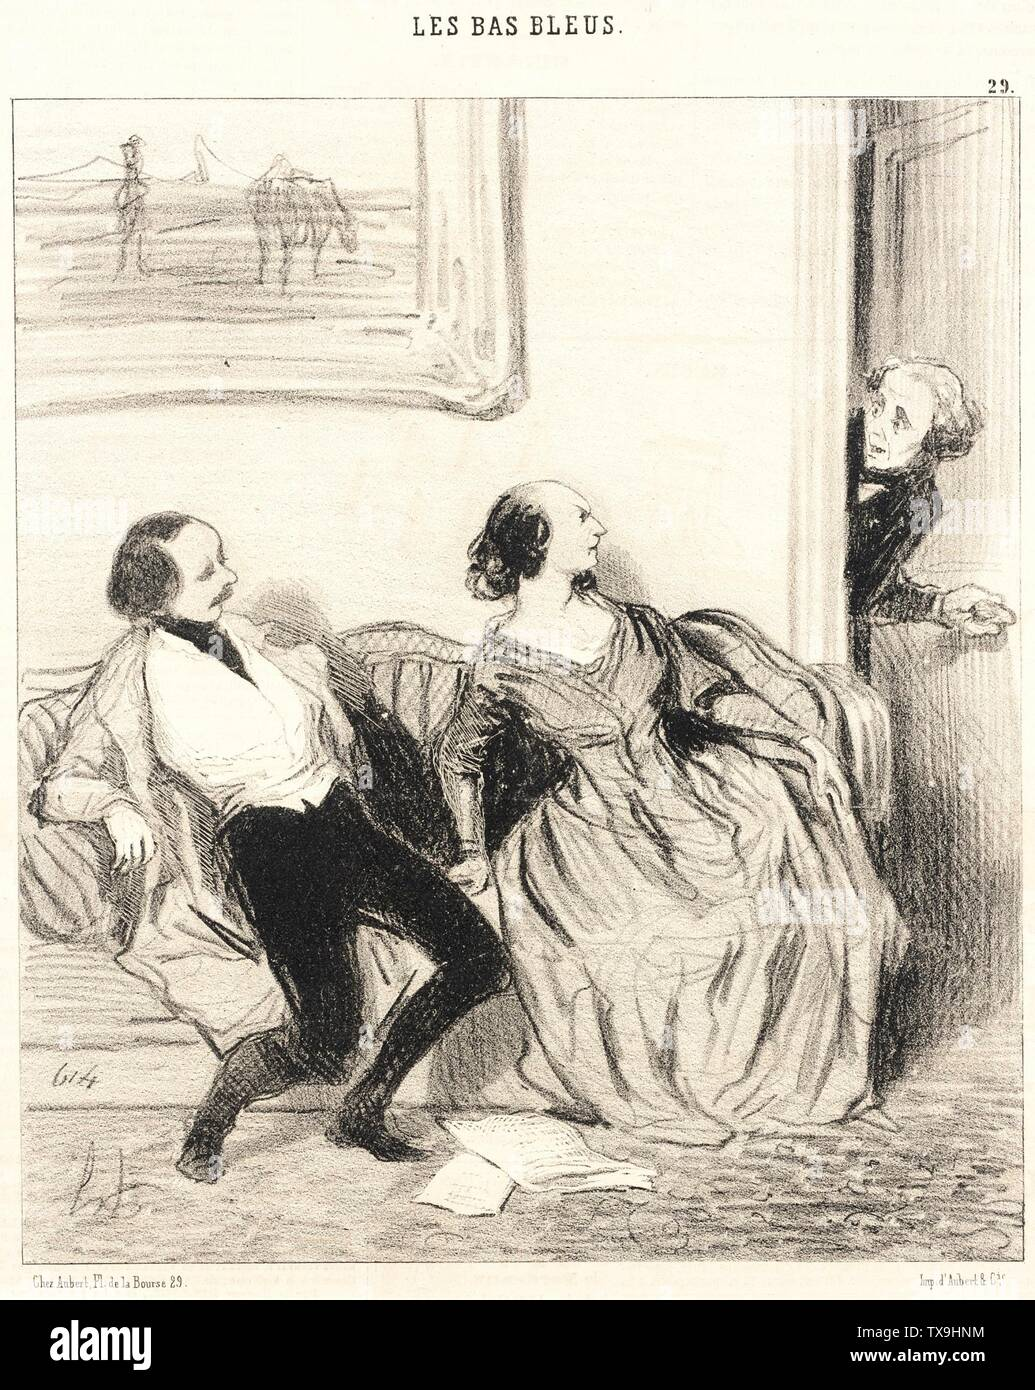 'Mon bonne amie, puis-je entrer!...; English:  France, 1844 Series: Les Bas-blues, no. 29 Periodical: Le Charivari, 30 May 1844 Prints; lithographs Lithograph Sheet: 9 1/16 x 7 13/16 in. (23.02 x 19.84 cm) Gift of Mrs. Florence Victor from The David and Florence Victor Collection (M.91.82.186) Prints and Drawings; 1844date QS:P571,+1844-00-00T00:00:00Z/9; ' - Stock Image